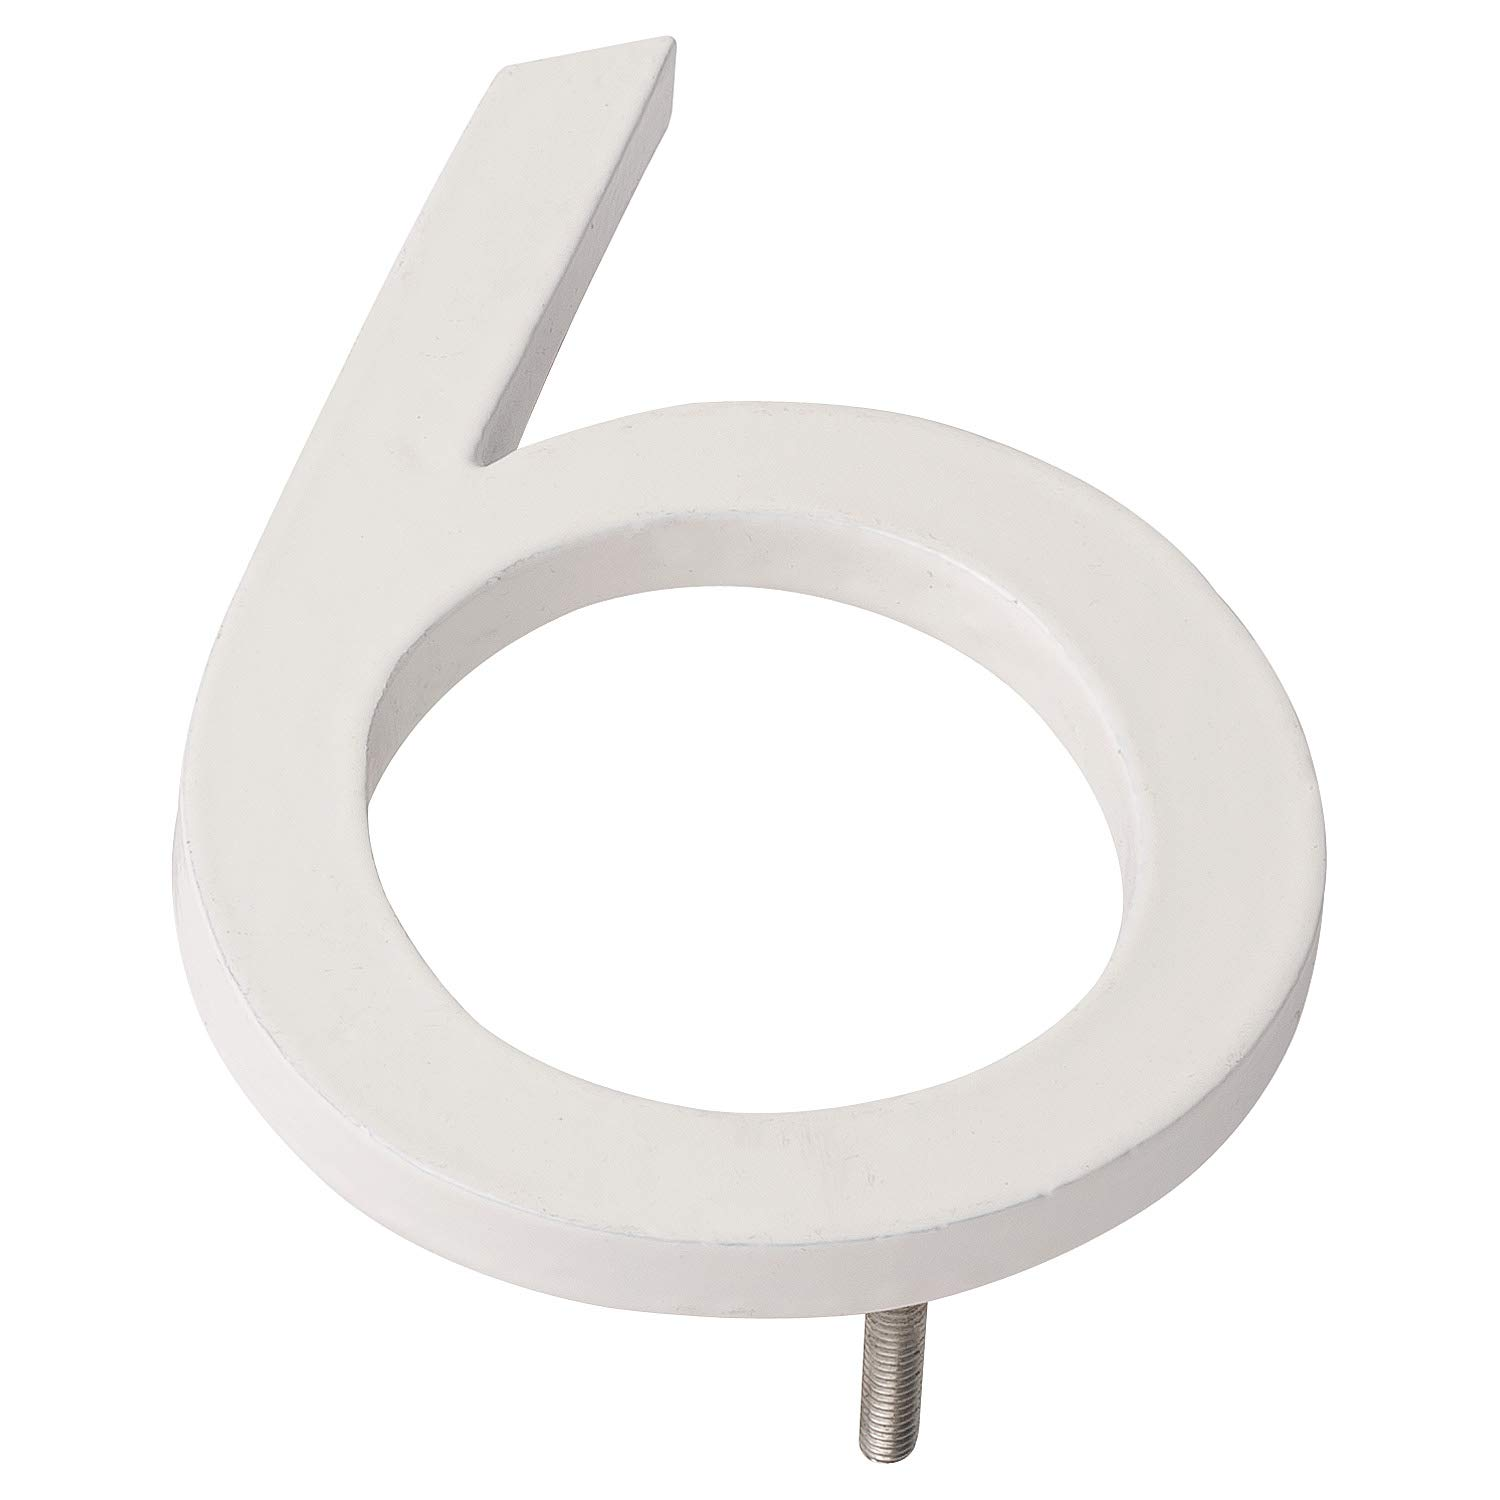 Montague Metal Products MHN-10-6-F-WE1 Floating House Number, 10 inches x 7.25 inches x 0.375 inches White